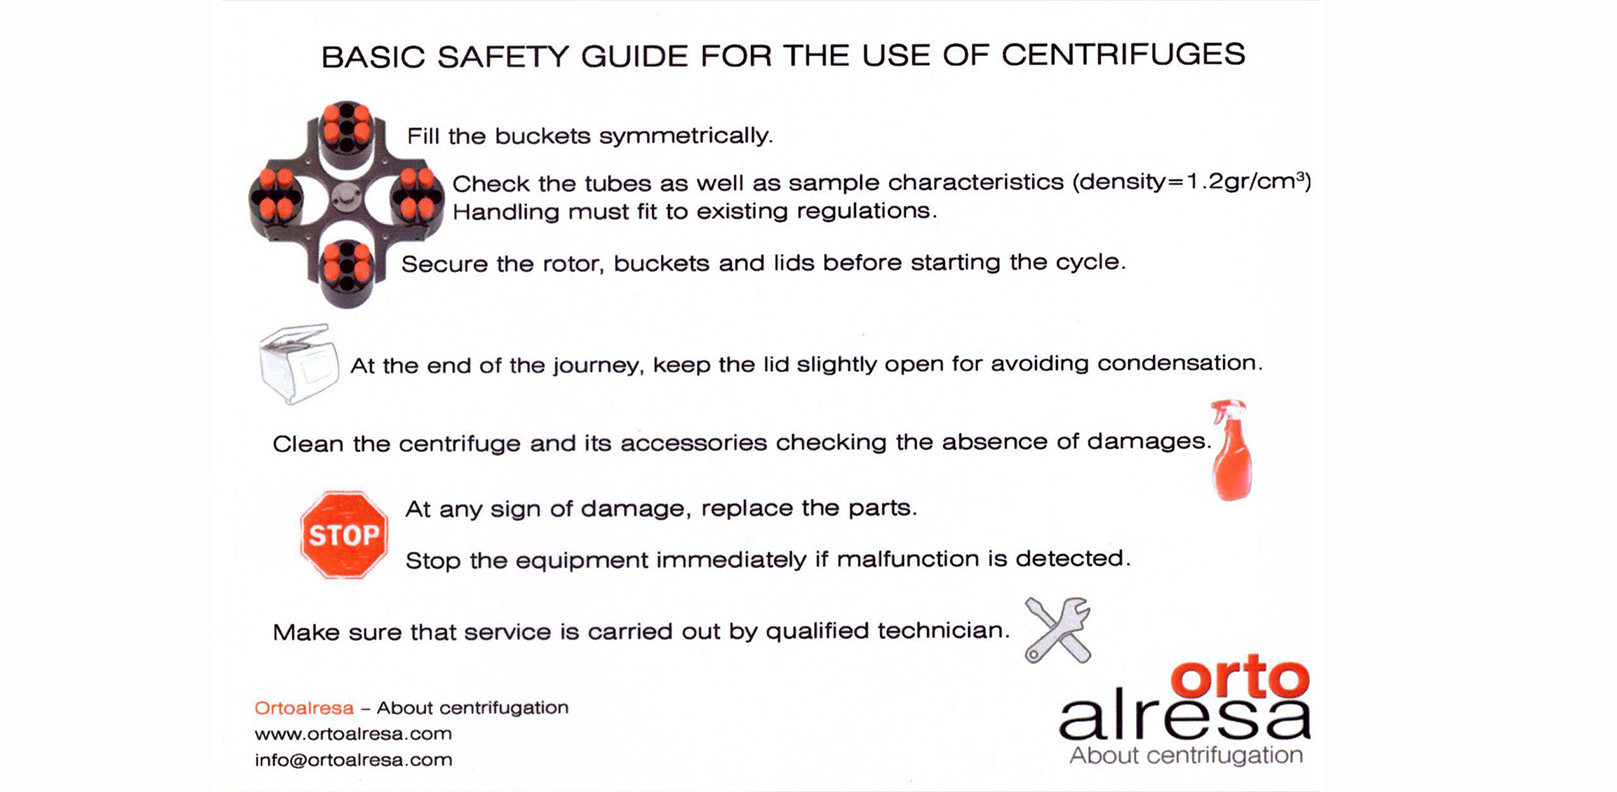 Safety Guide For The Use Of Centrifuges